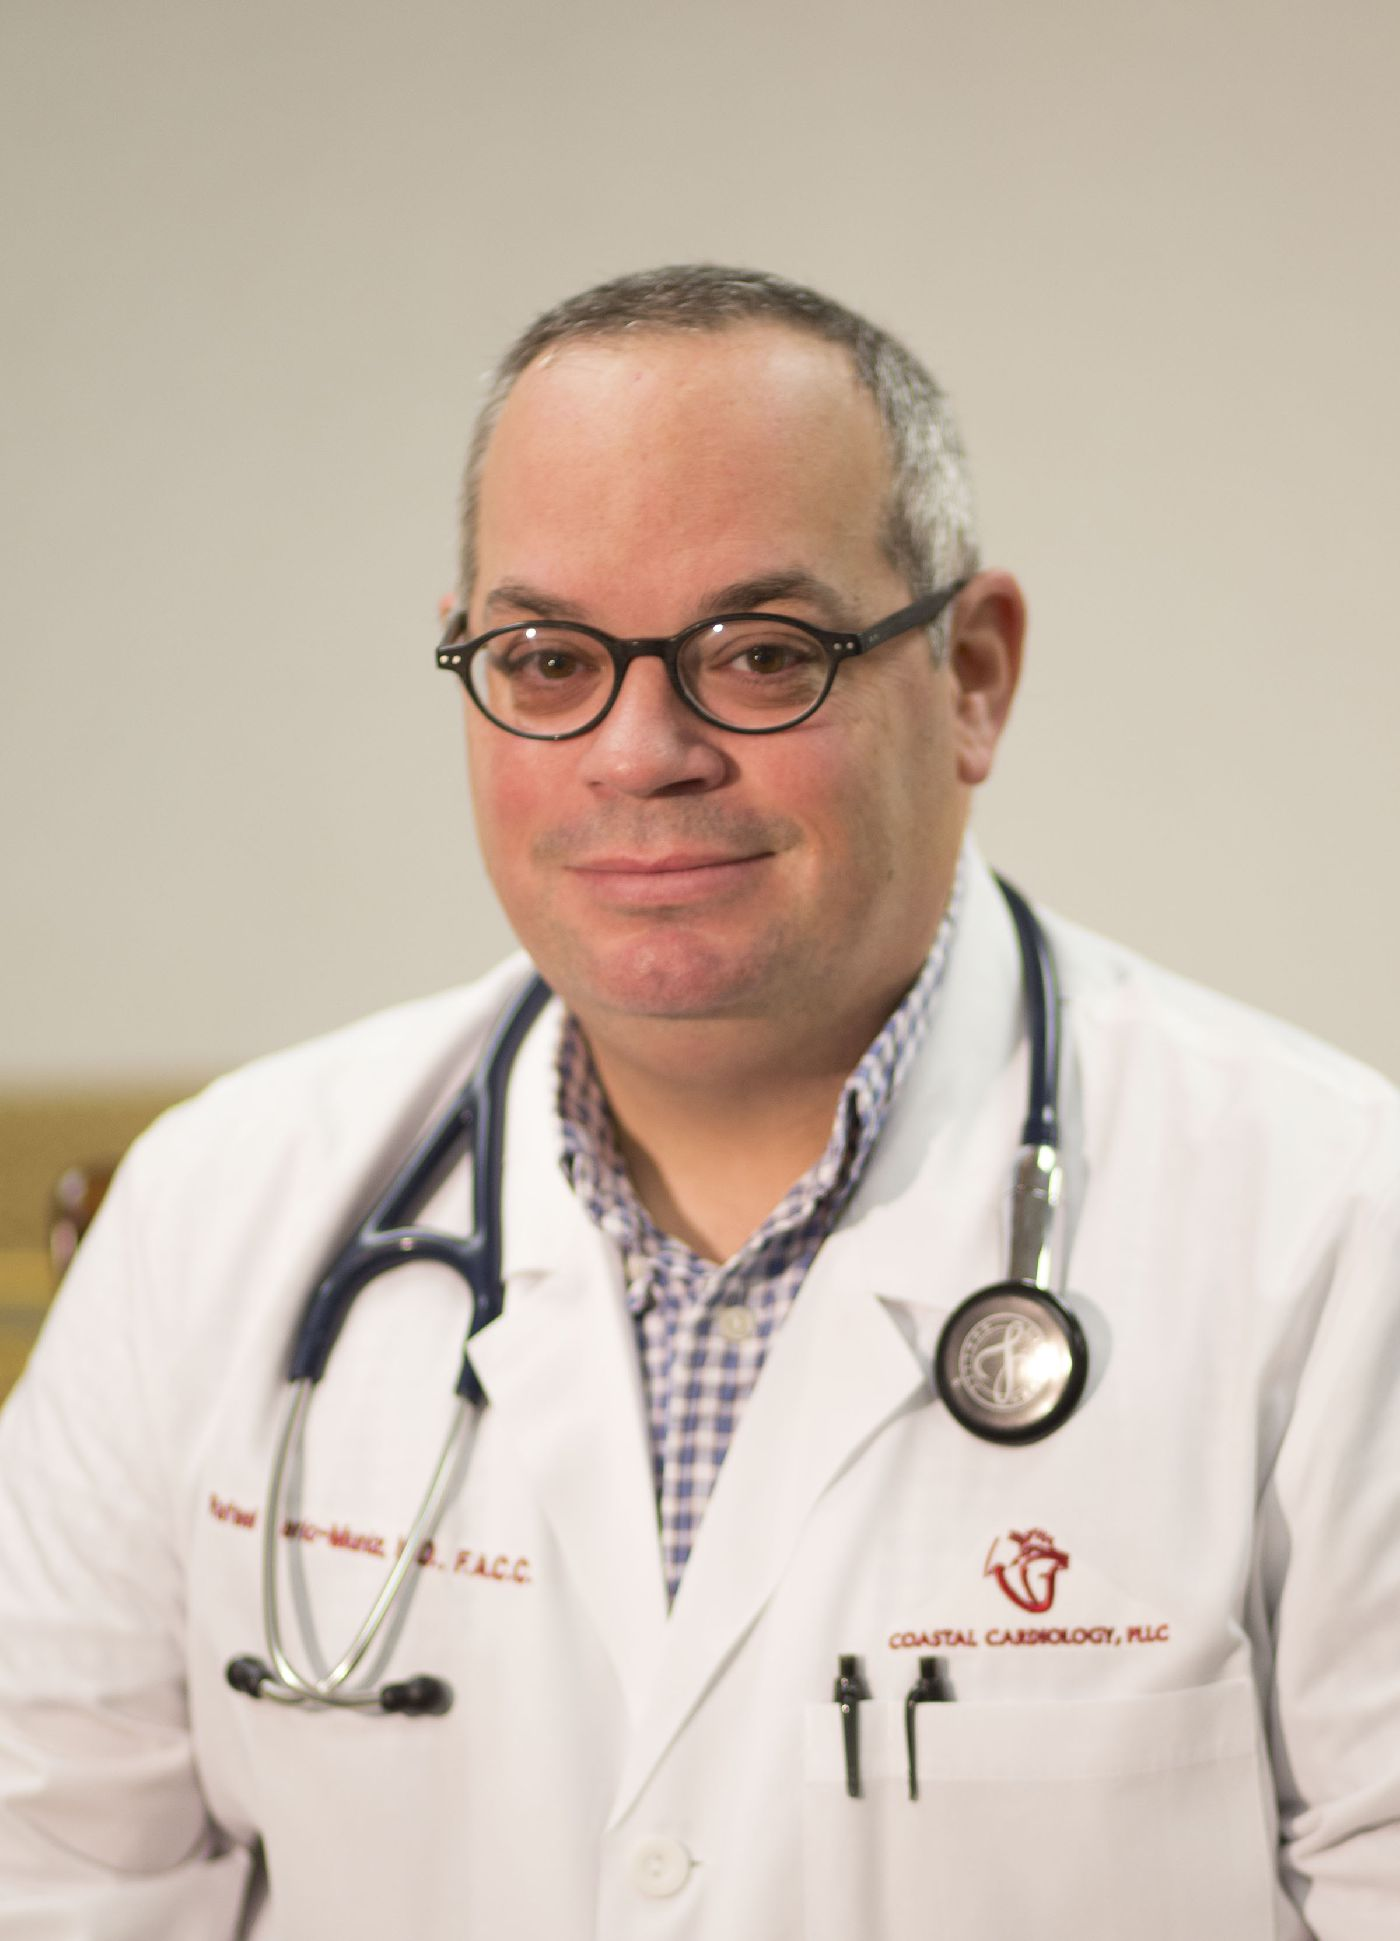 Dr. Berio-Muñiz - Cardiologist at Coastal Cardiology Association